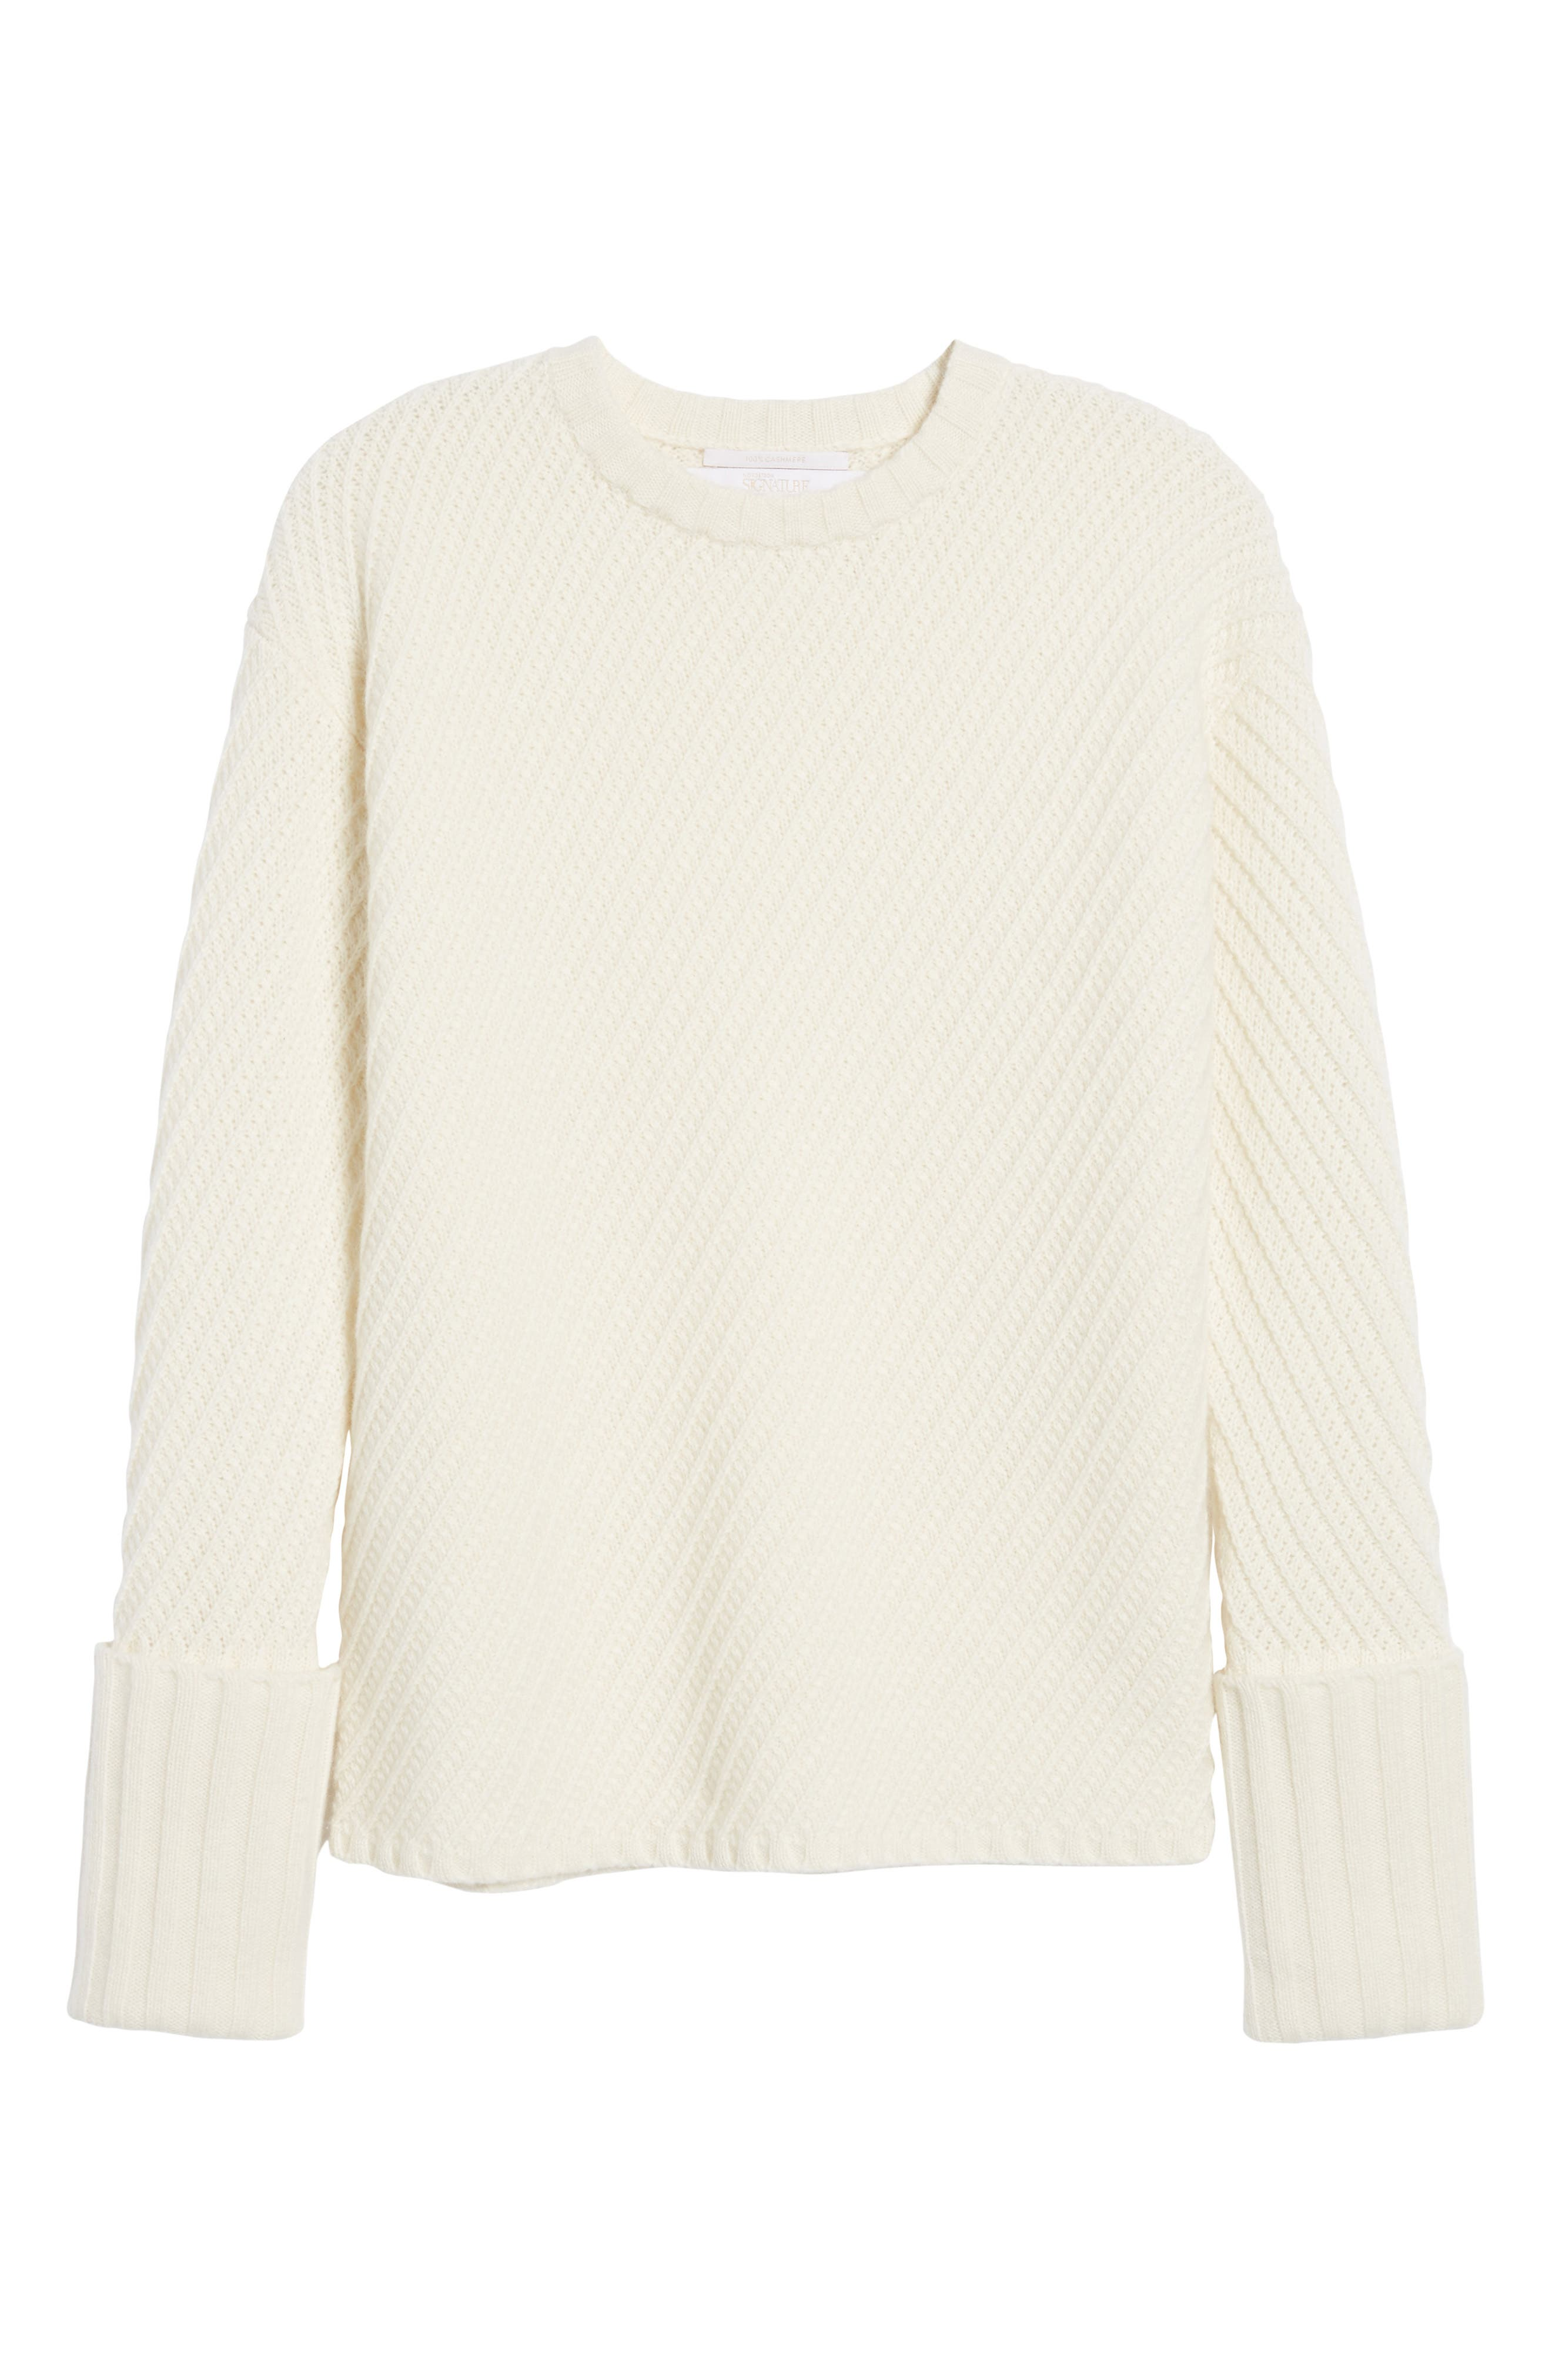 Textured Cashmere Sweater,                             Alternate thumbnail 6, color,